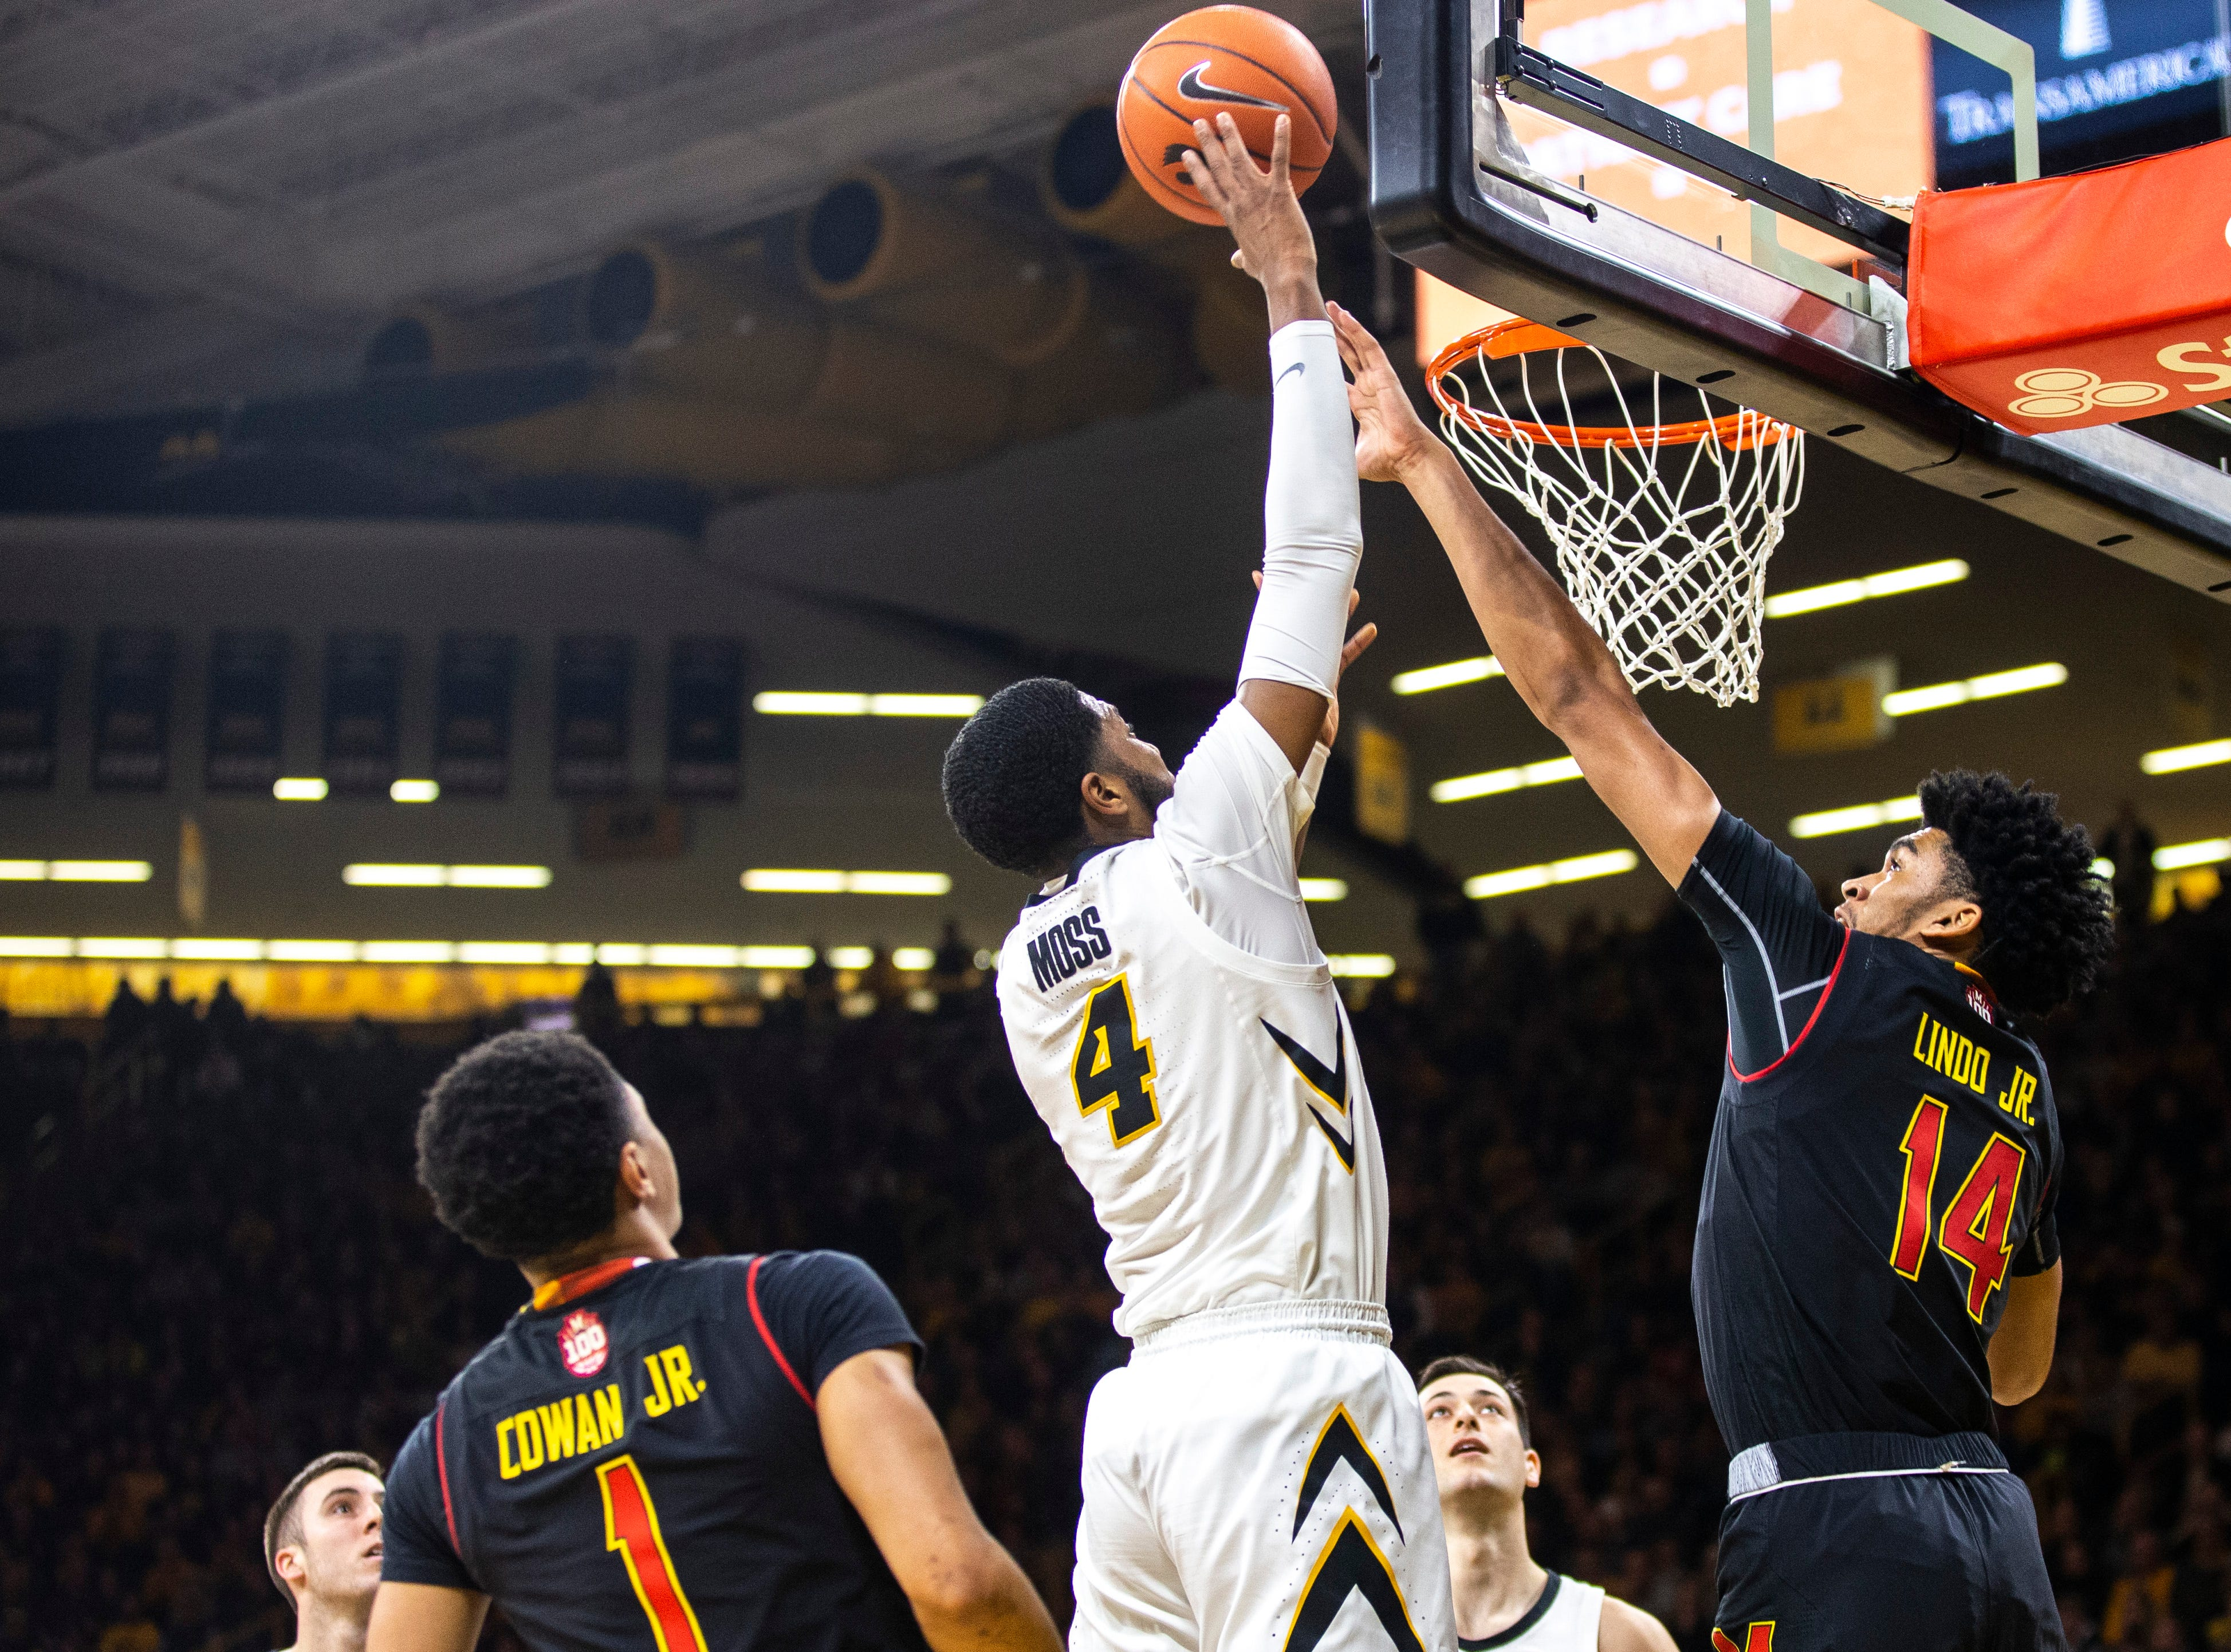 Iowa guard Isaiah Moss (4) makes a basket while Maryland forward Ricky Lindo Jr. (14) defends during a NCAA Big Ten Conference men's basketball game on Tuesday, Feb. 19, 2019 at Carver-Hawkeye Arena in Iowa City, Iowa.